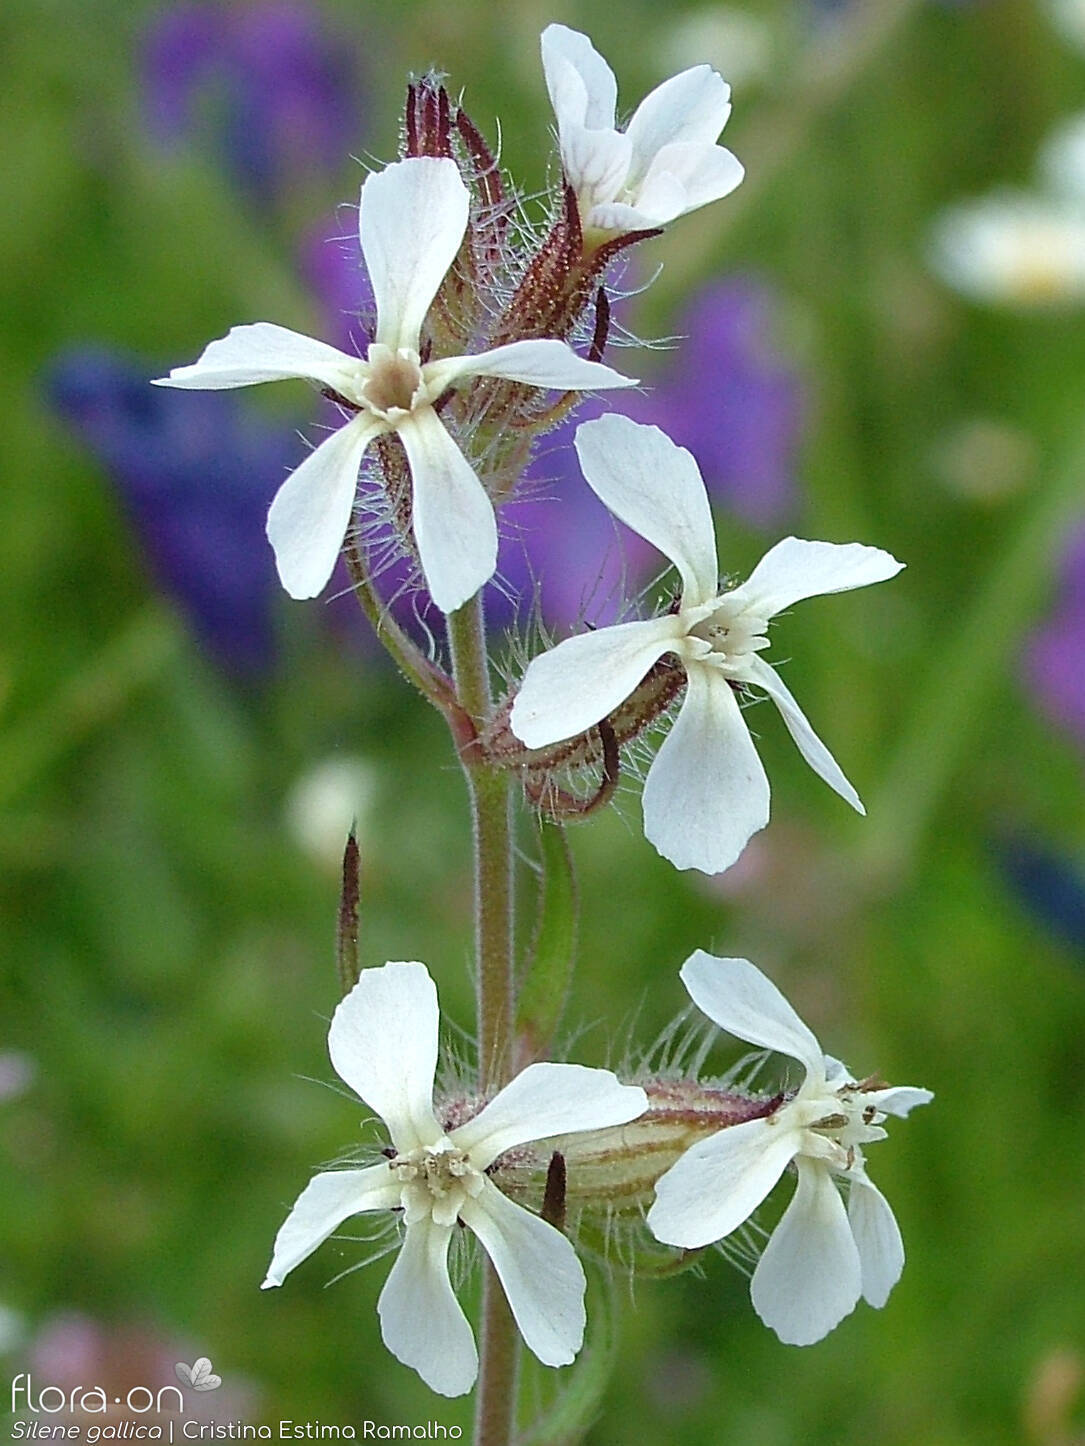 Silene gallica - Flor (close-up) | Cristina Estima Ramalho; CC BY-NC 4.0